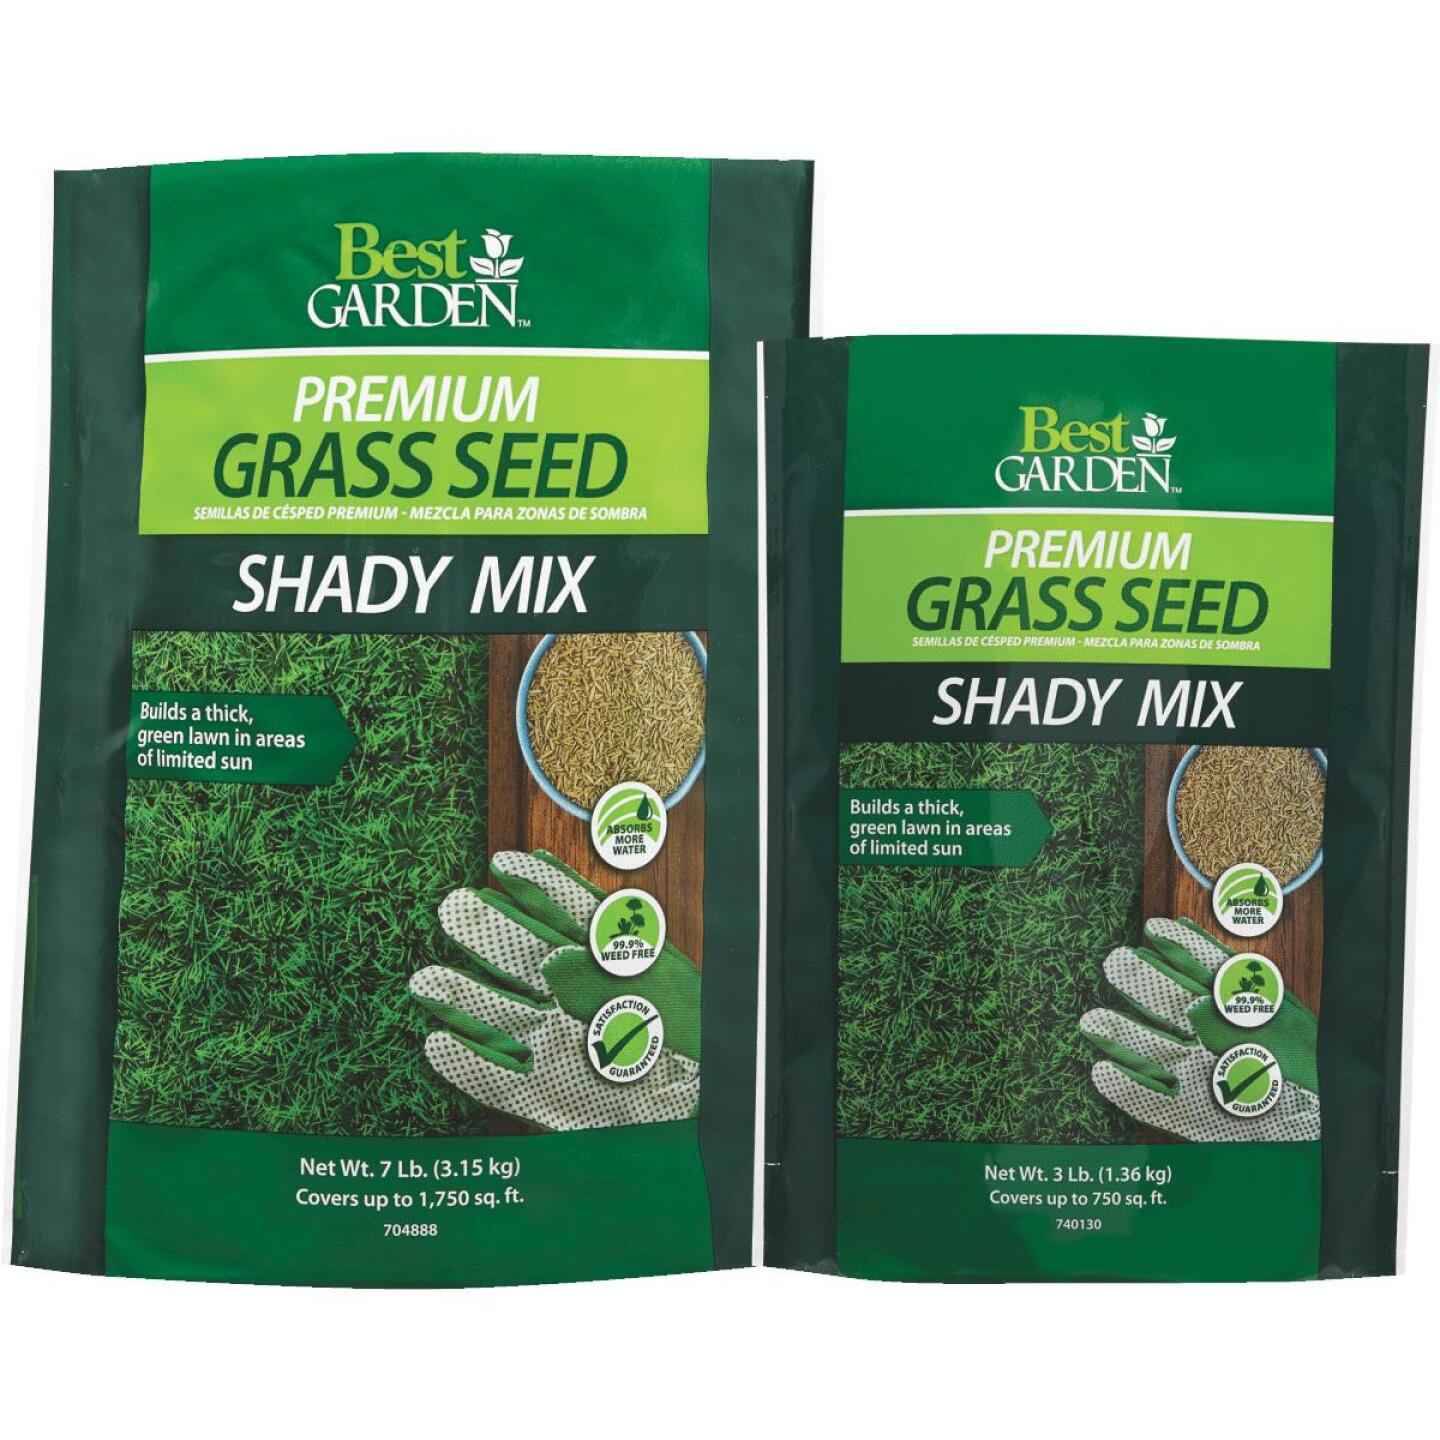 Best Garden 7 Lb. 1750 Sq. Ft. Coverage Shady Grass Seed Image 2